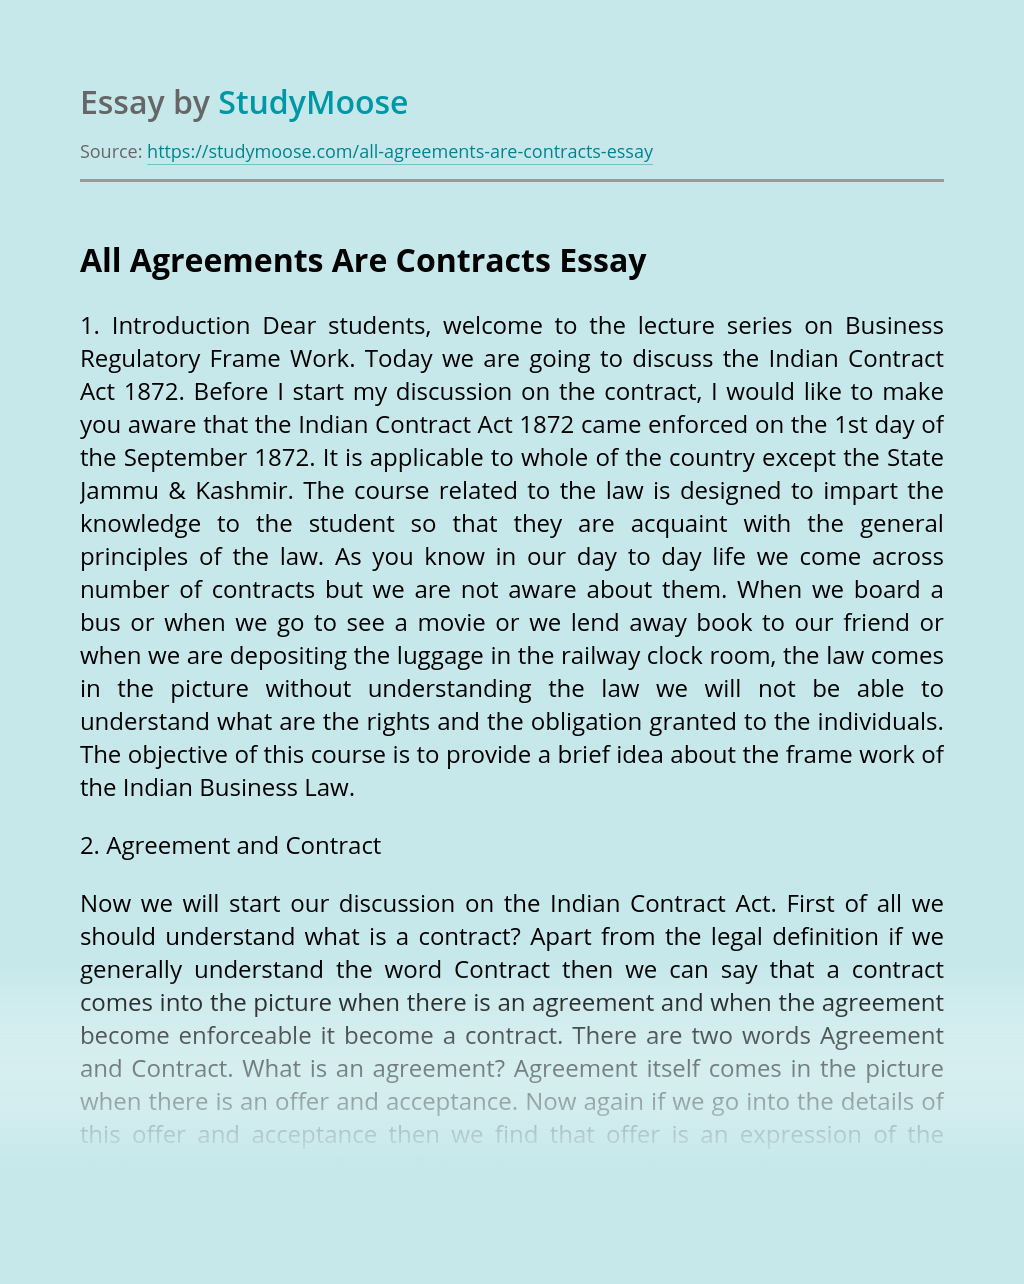 All Agreements Are Contracts